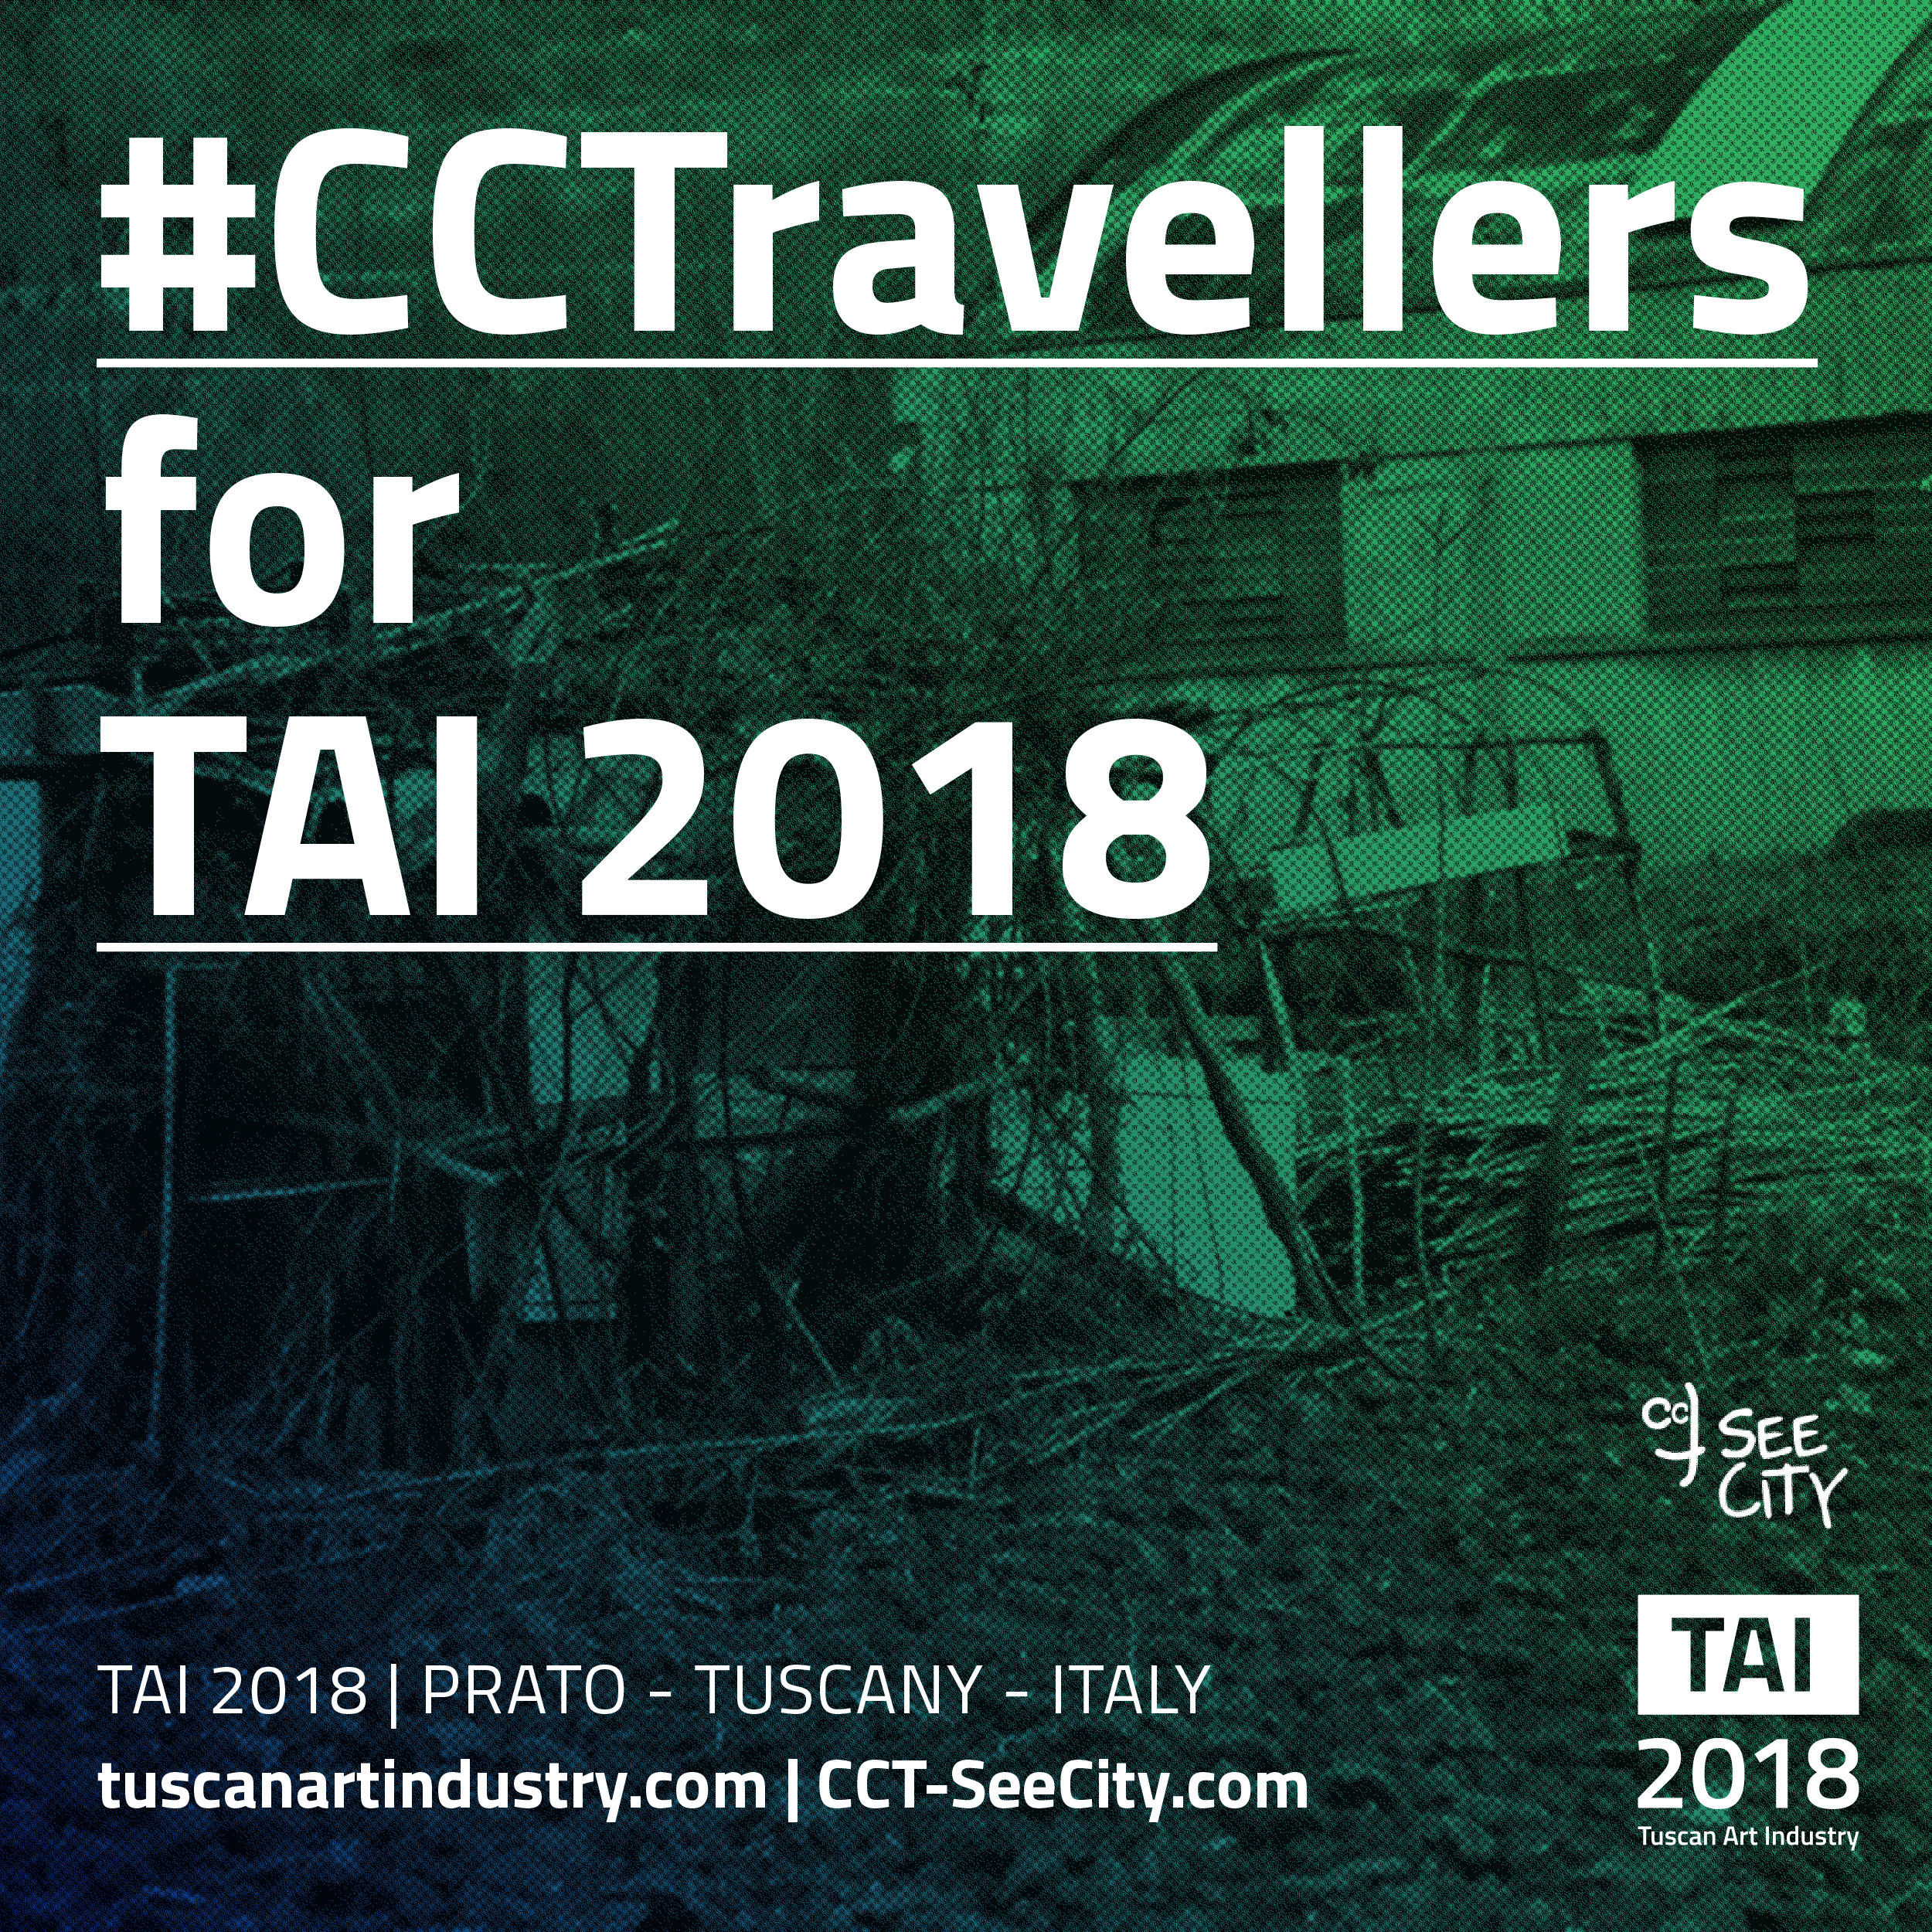 CCTravellers for TAI 2018